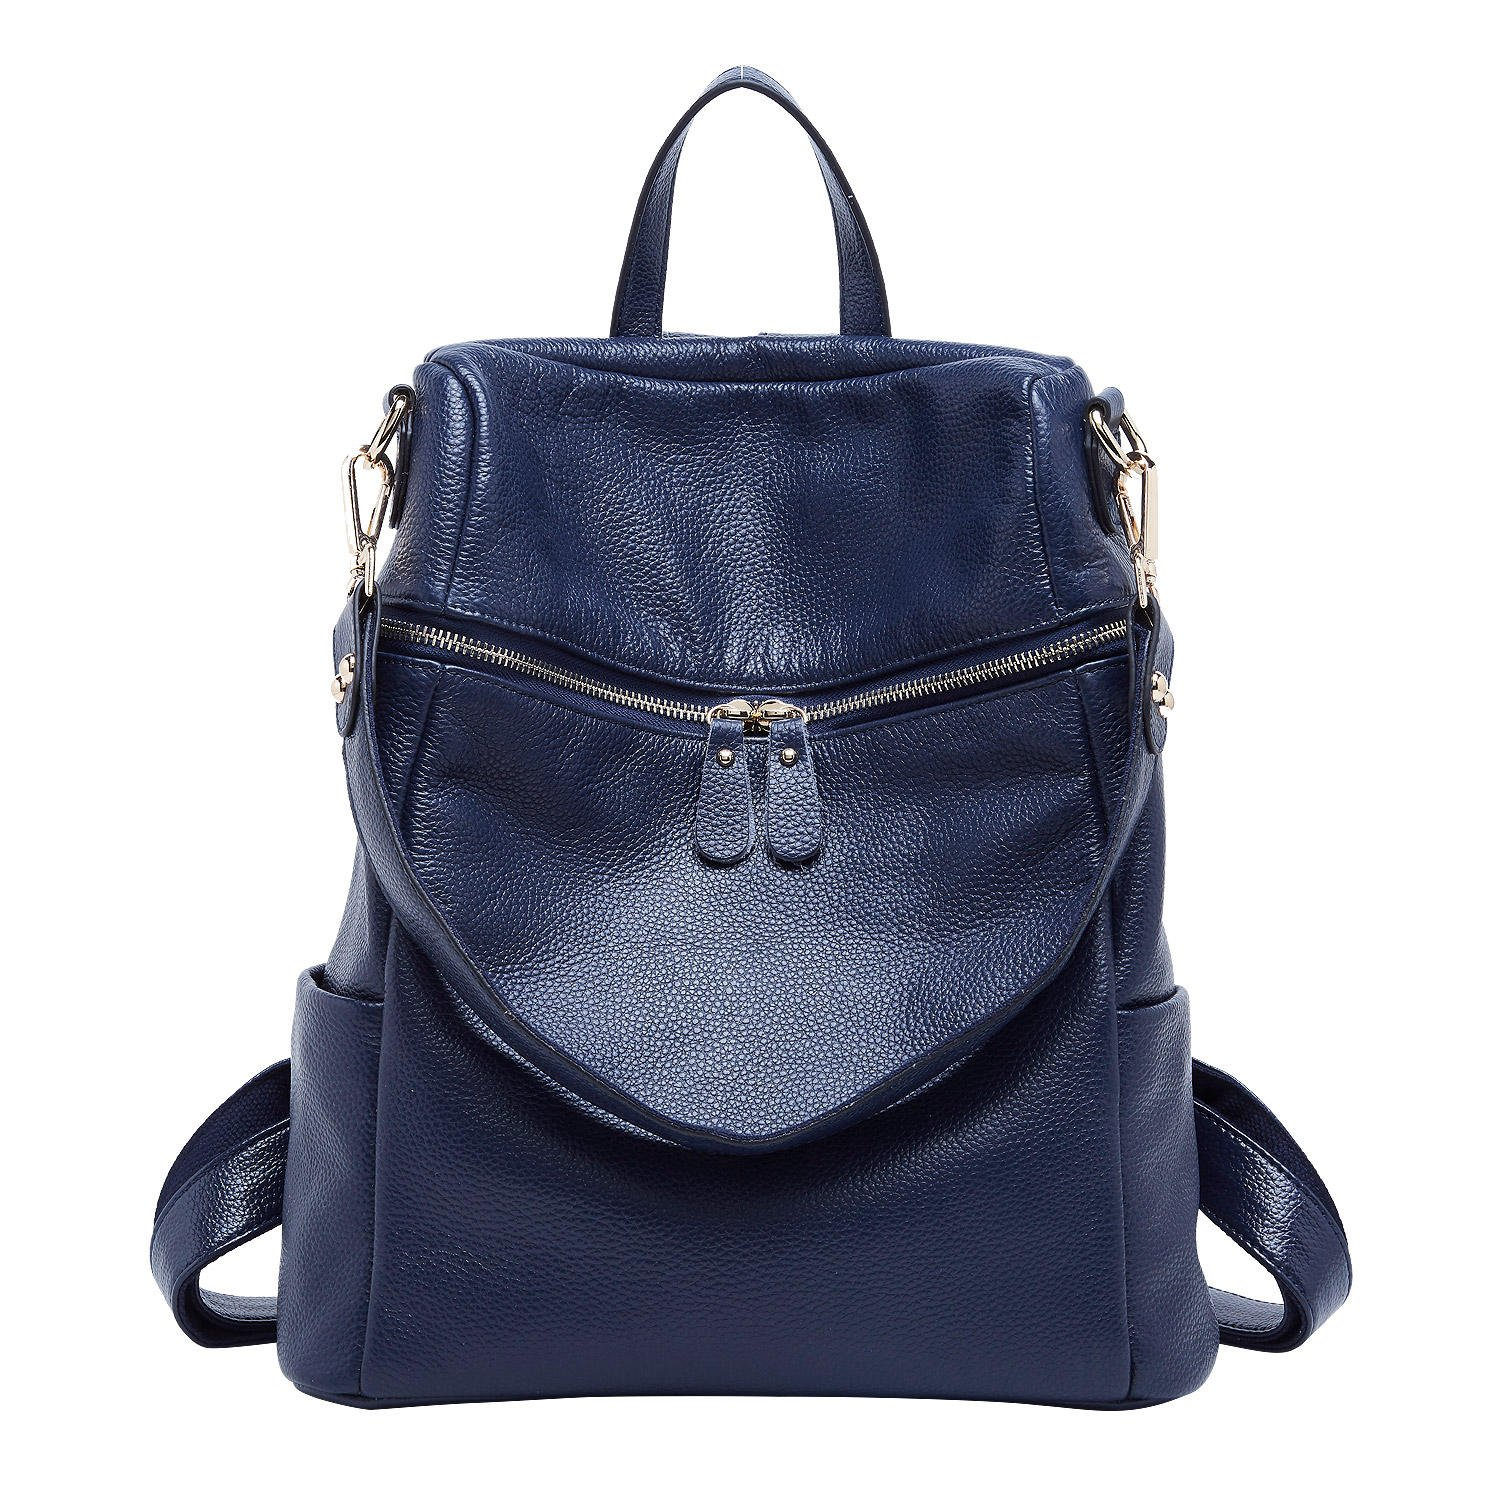 BOYATU Convertible Genuine Leather Backpack Purse for Women Fashion Travel Bag (Blue)